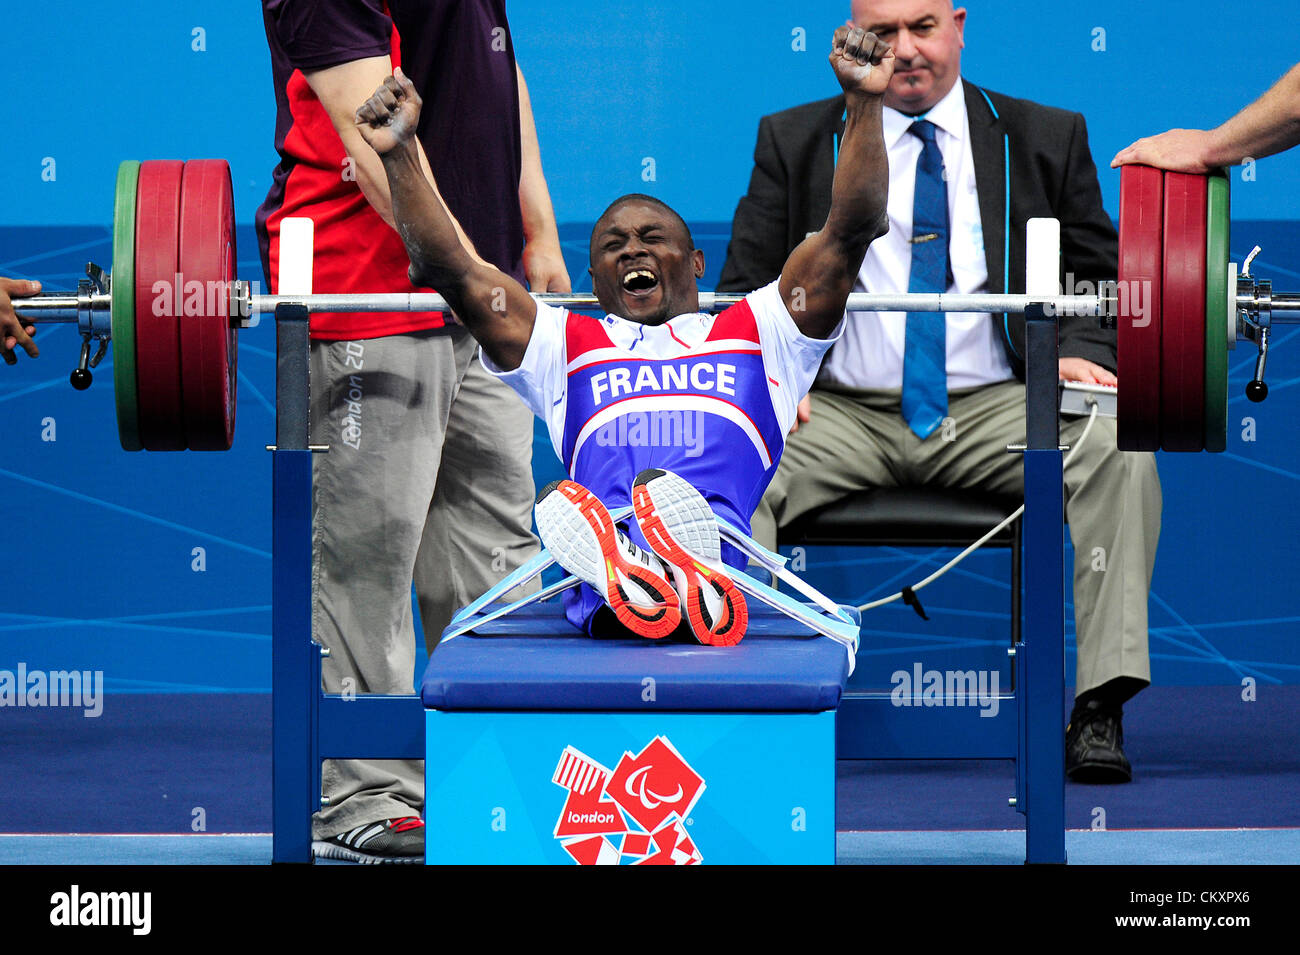 30.08.2012 Stratford, England. Patrick Ardon of France in action during the Men's -48Kg Powerlifting on day - Stock Image